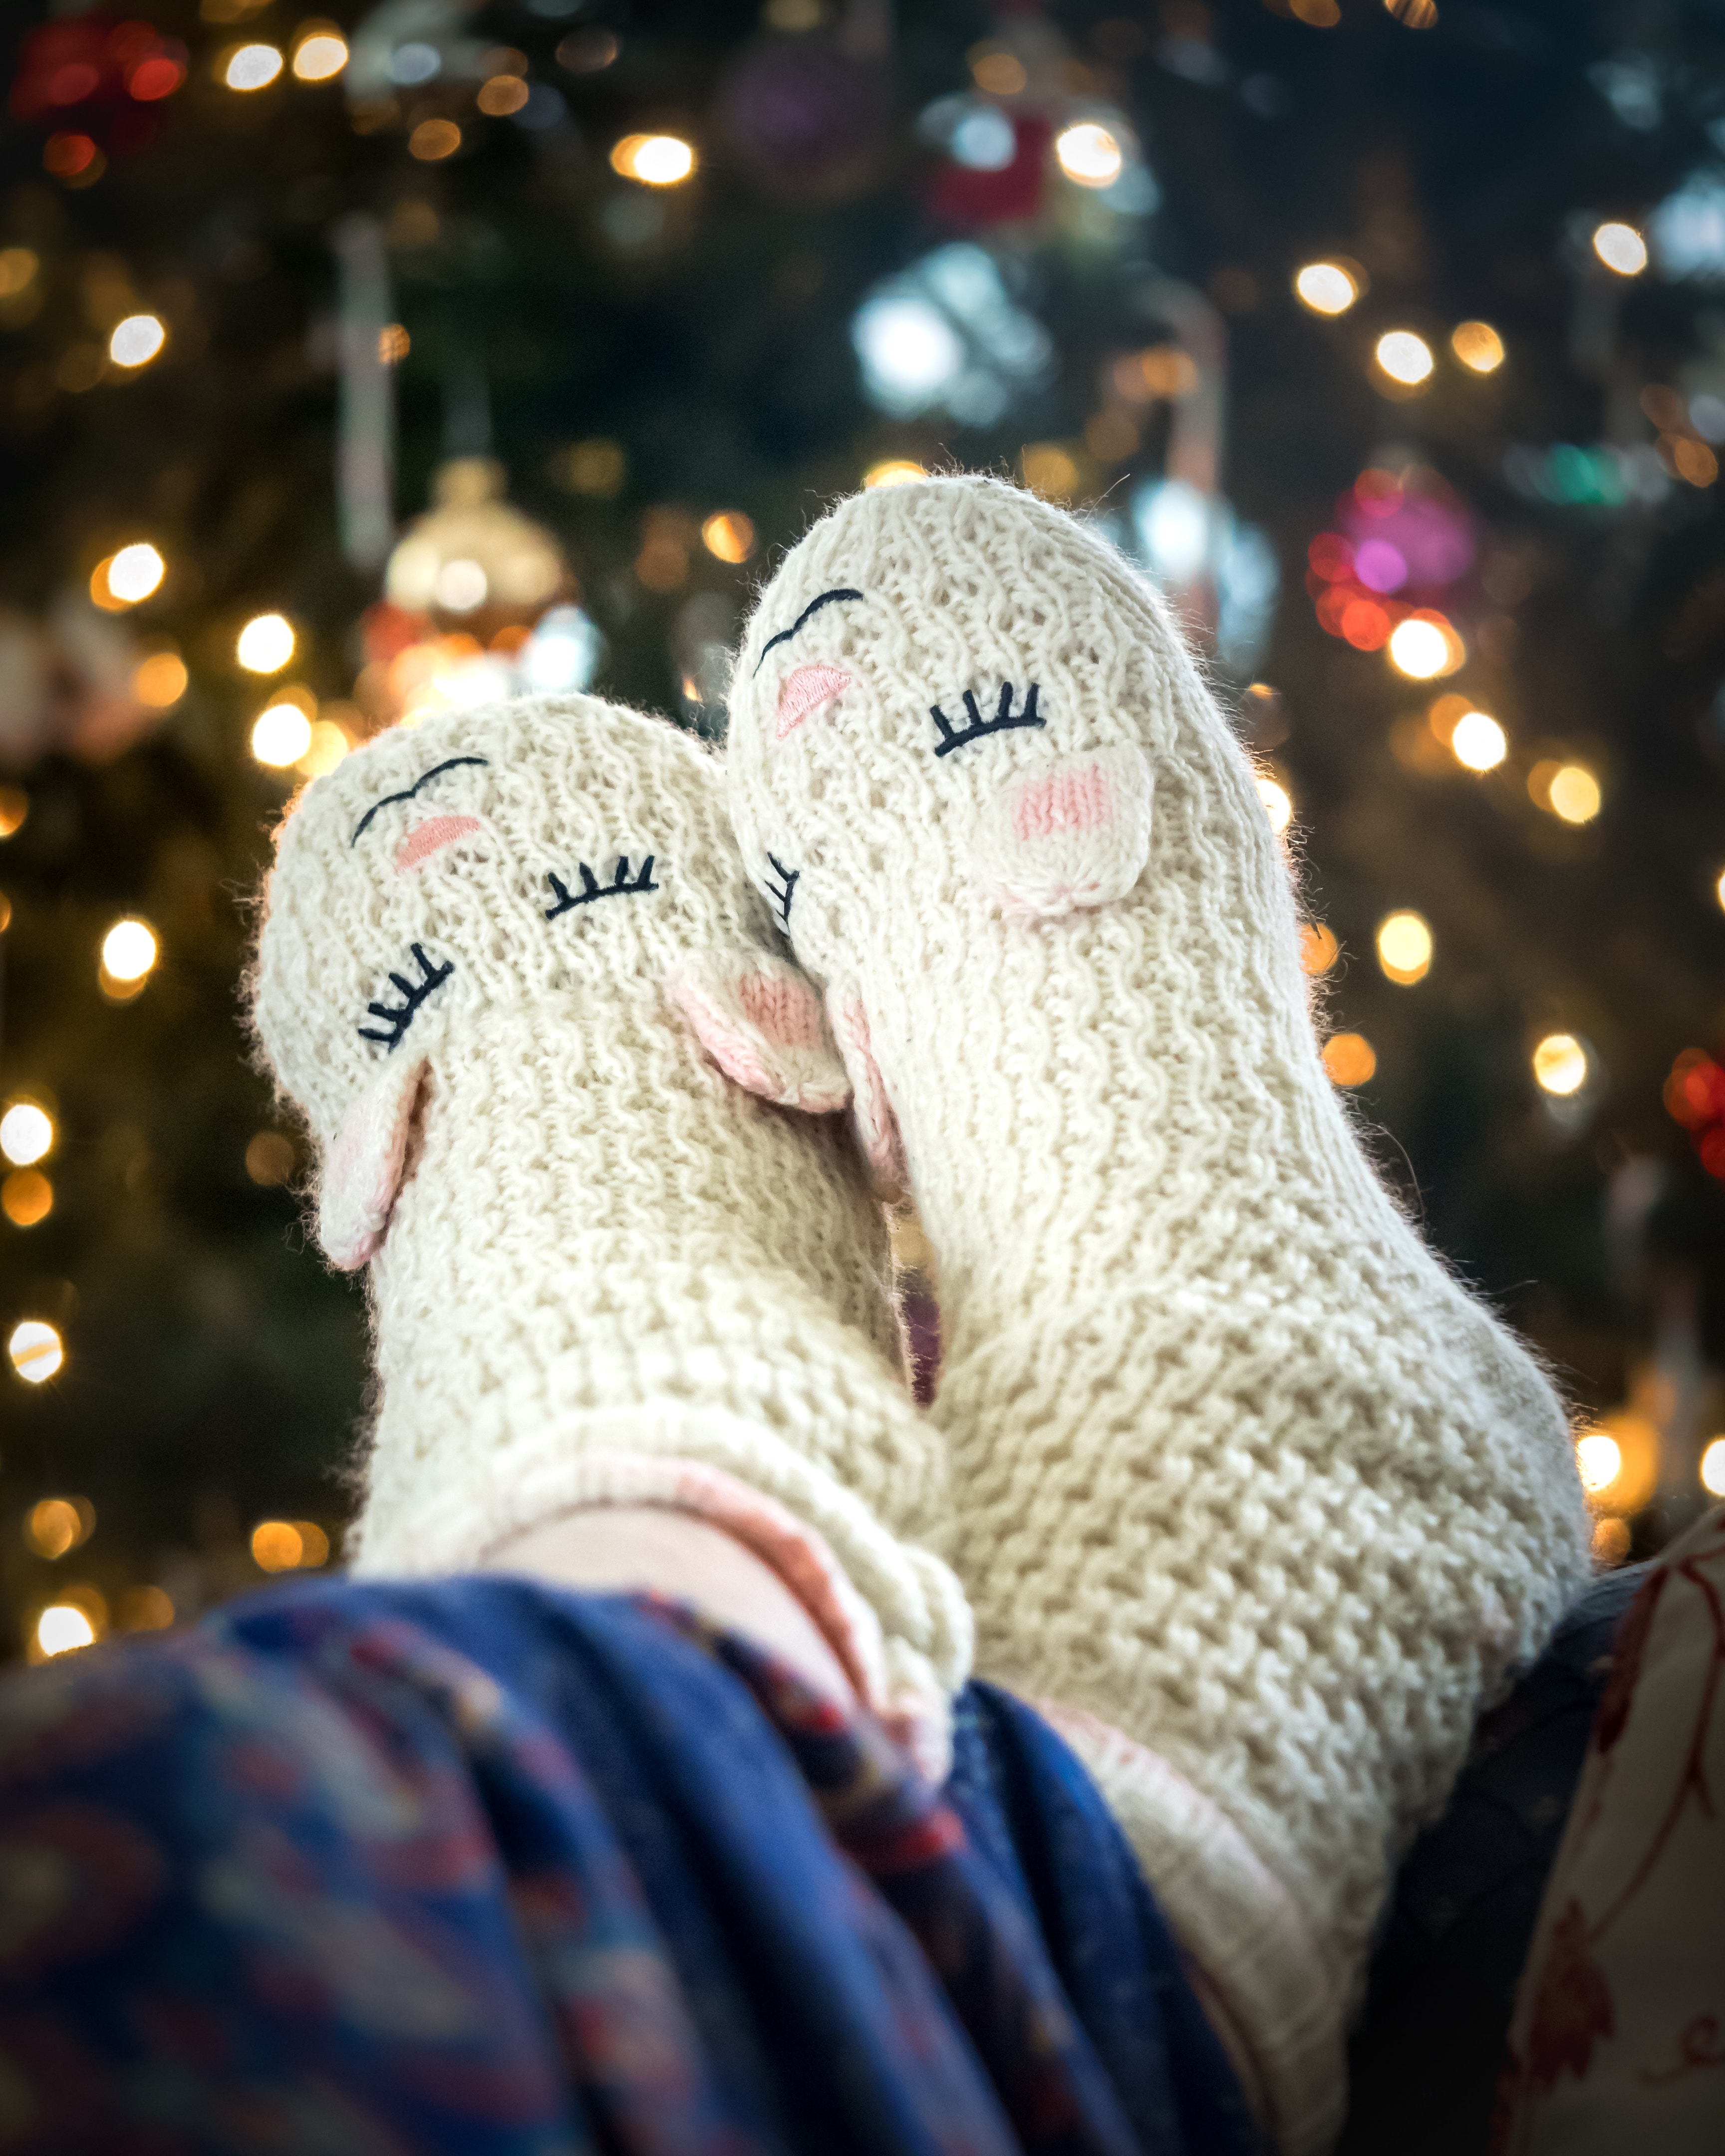 124132 download wallpaper Miscellanea, Miscellaneous, Legs, Socks, Knitted, Cool screensavers and pictures for free